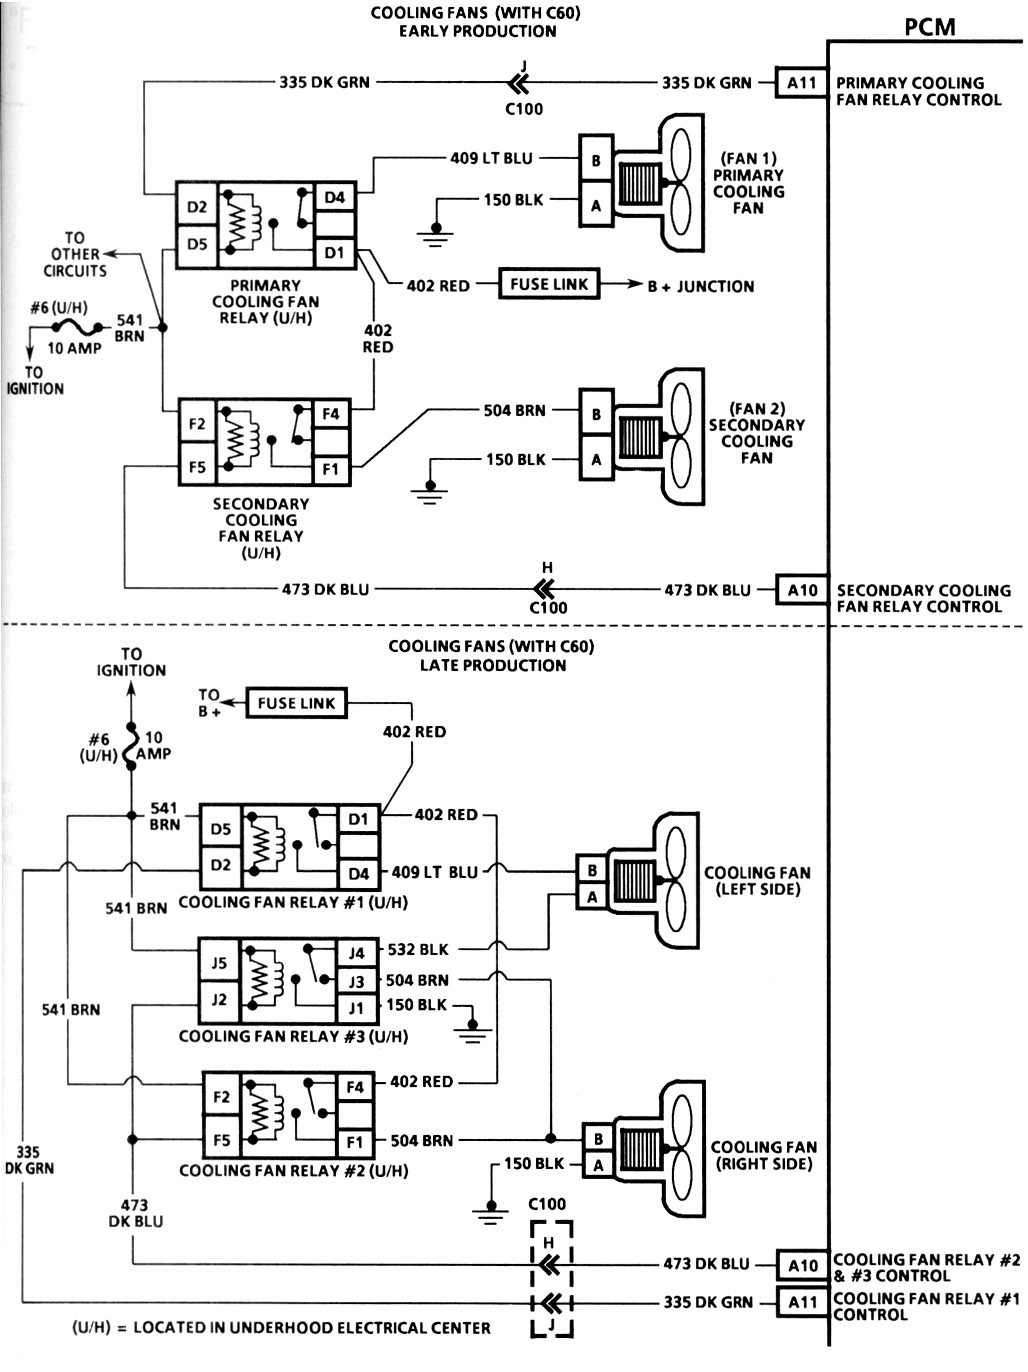 Yamaha G1 Gas Golf Cart Wiring Diagram further Yamaha G16 Wiring furthermore 1994 Corvette Wiring Harness besides Yamaha G1 Gas Golf Cart Wiring Diagram likewise Yamaha G8 Wiring Diagram. on yamaha golf cart wiring harness besides g1